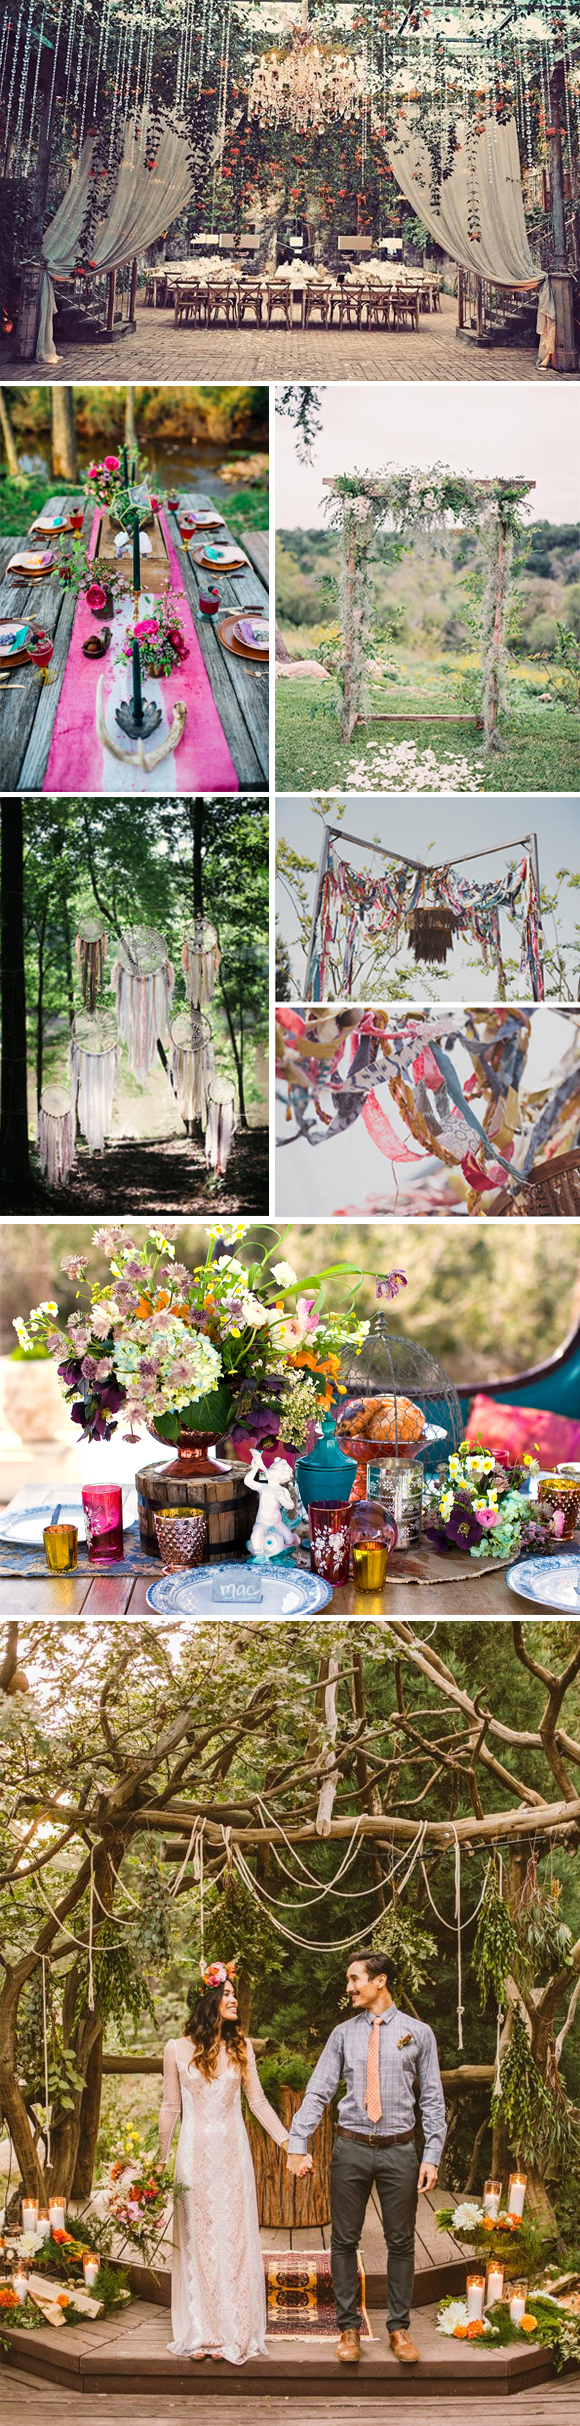 Decoración bodas civiles boho